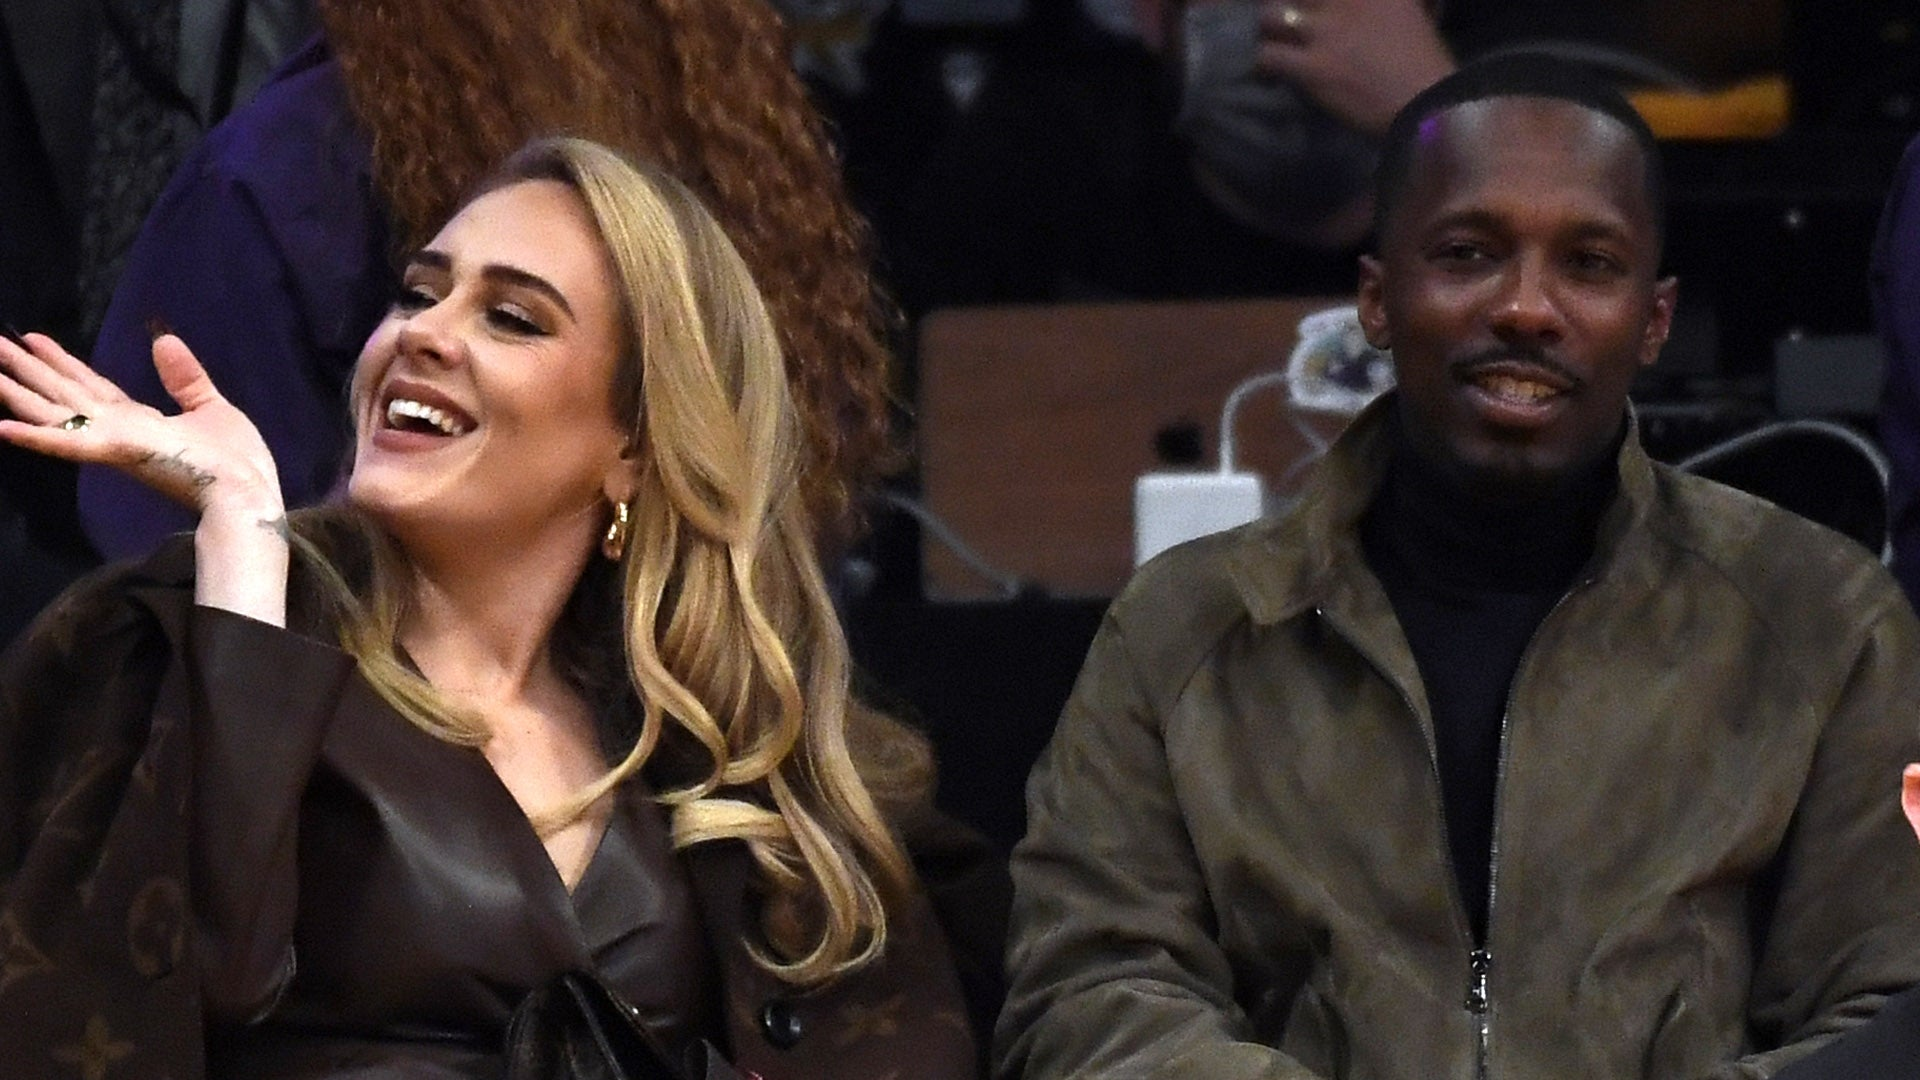 Inside Adele and Rich Paul's NBA Date Night!